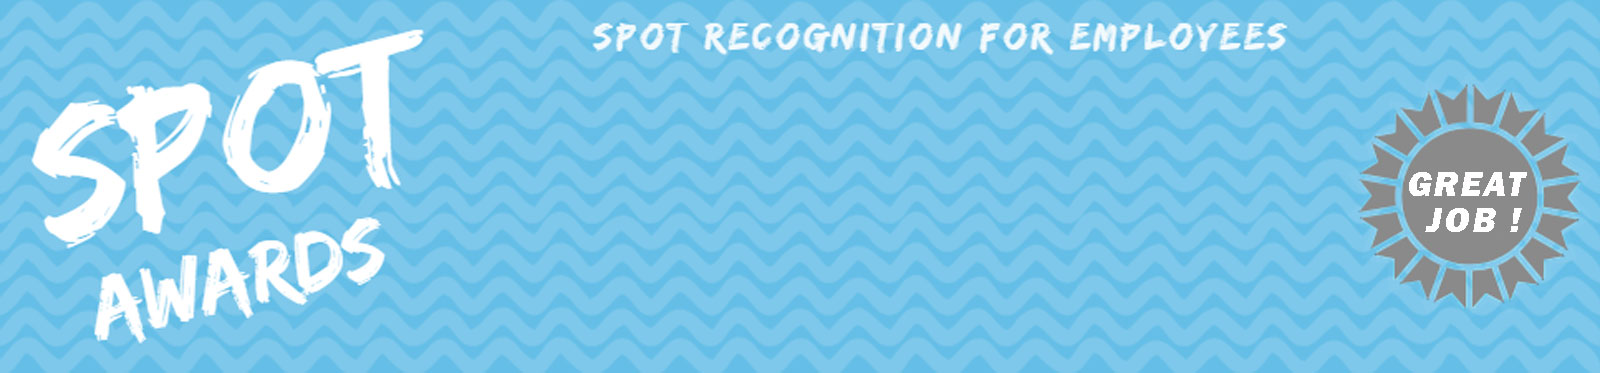 Spot Recognition Awards